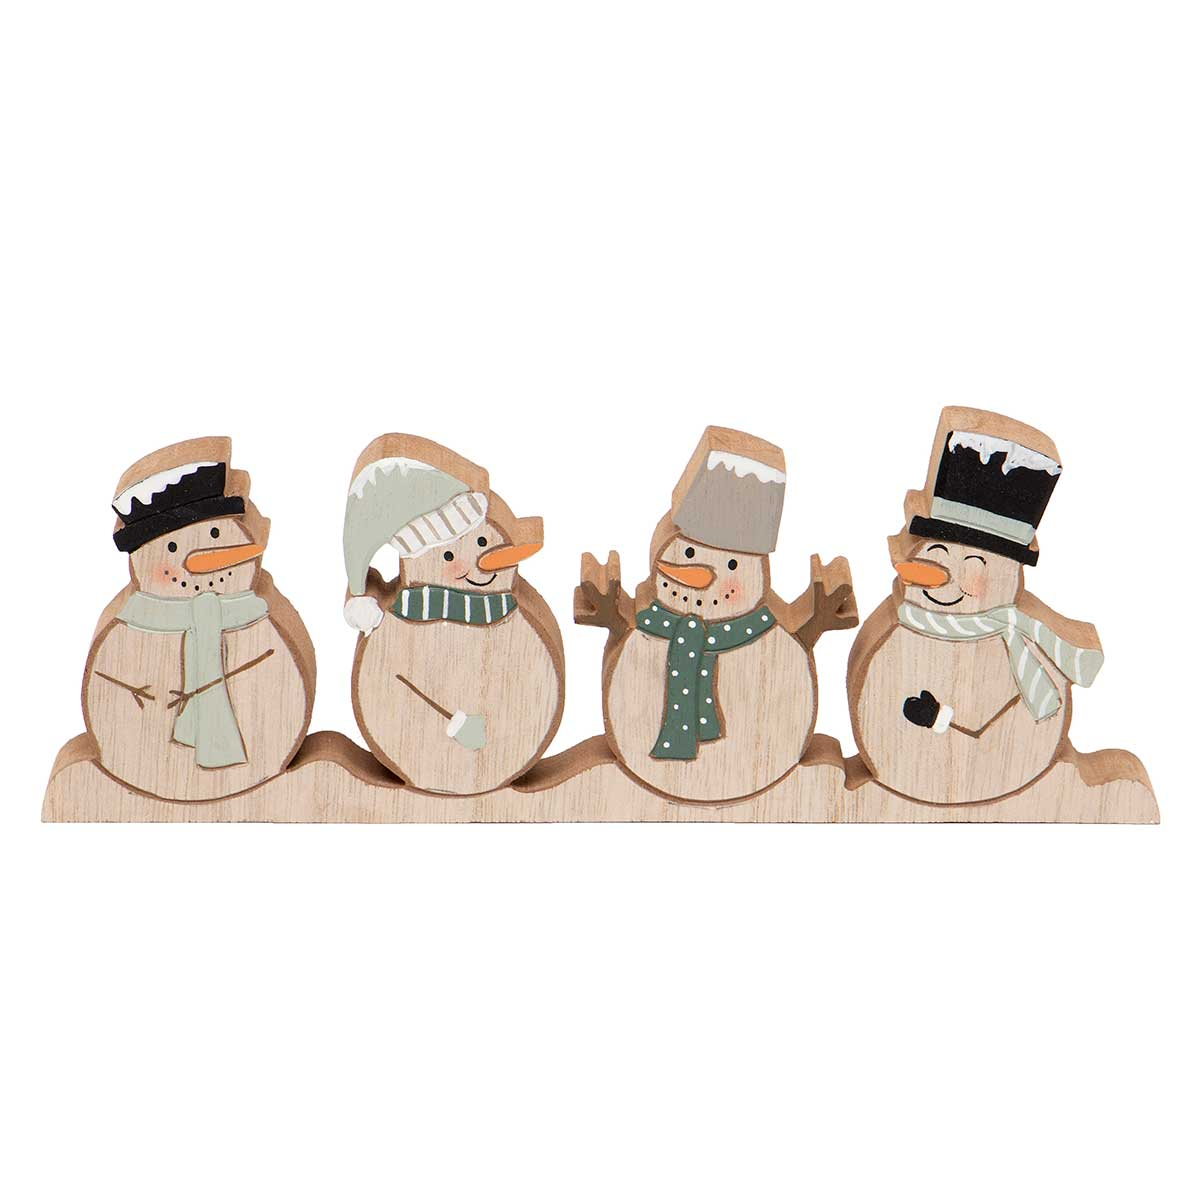 "WOOD SNOWMAN SHELF SITTER 9""X.75""X3.25"""